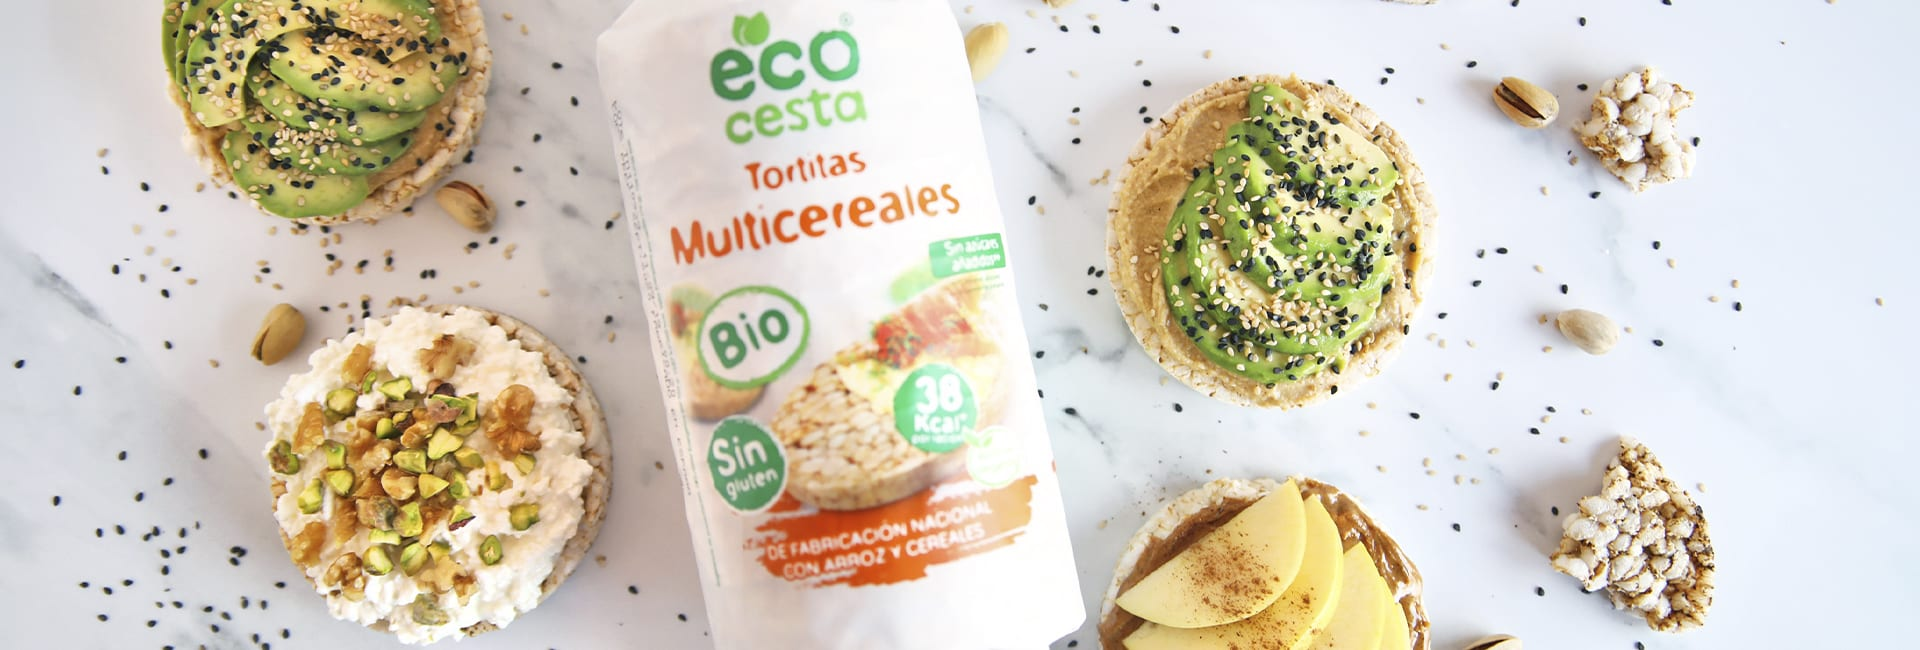 tortitas multicereales con toppings